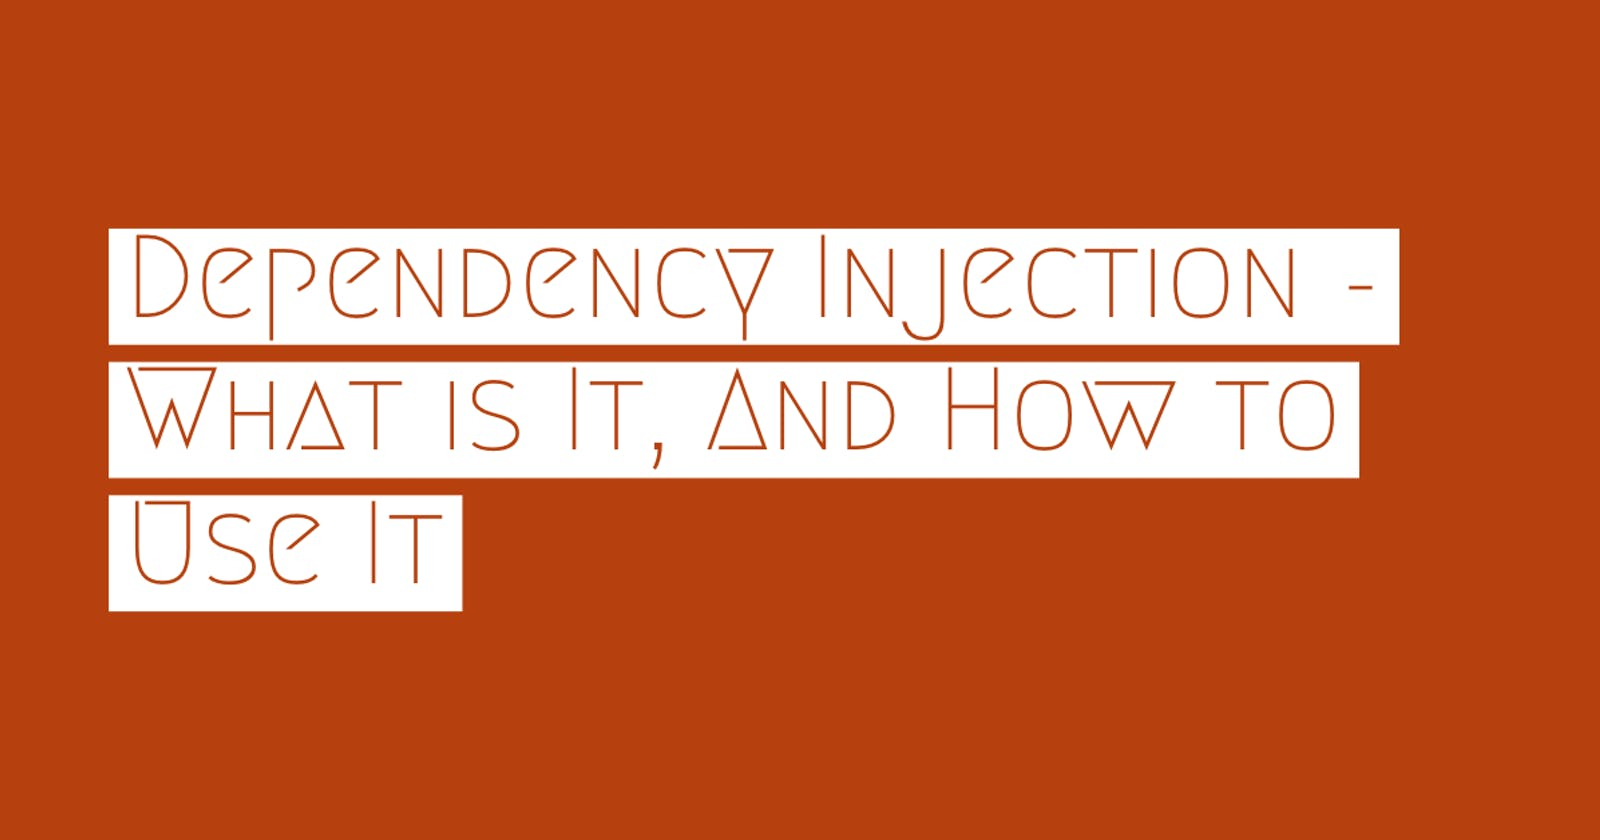 Dependency Injection - What is It, and How to Use It.